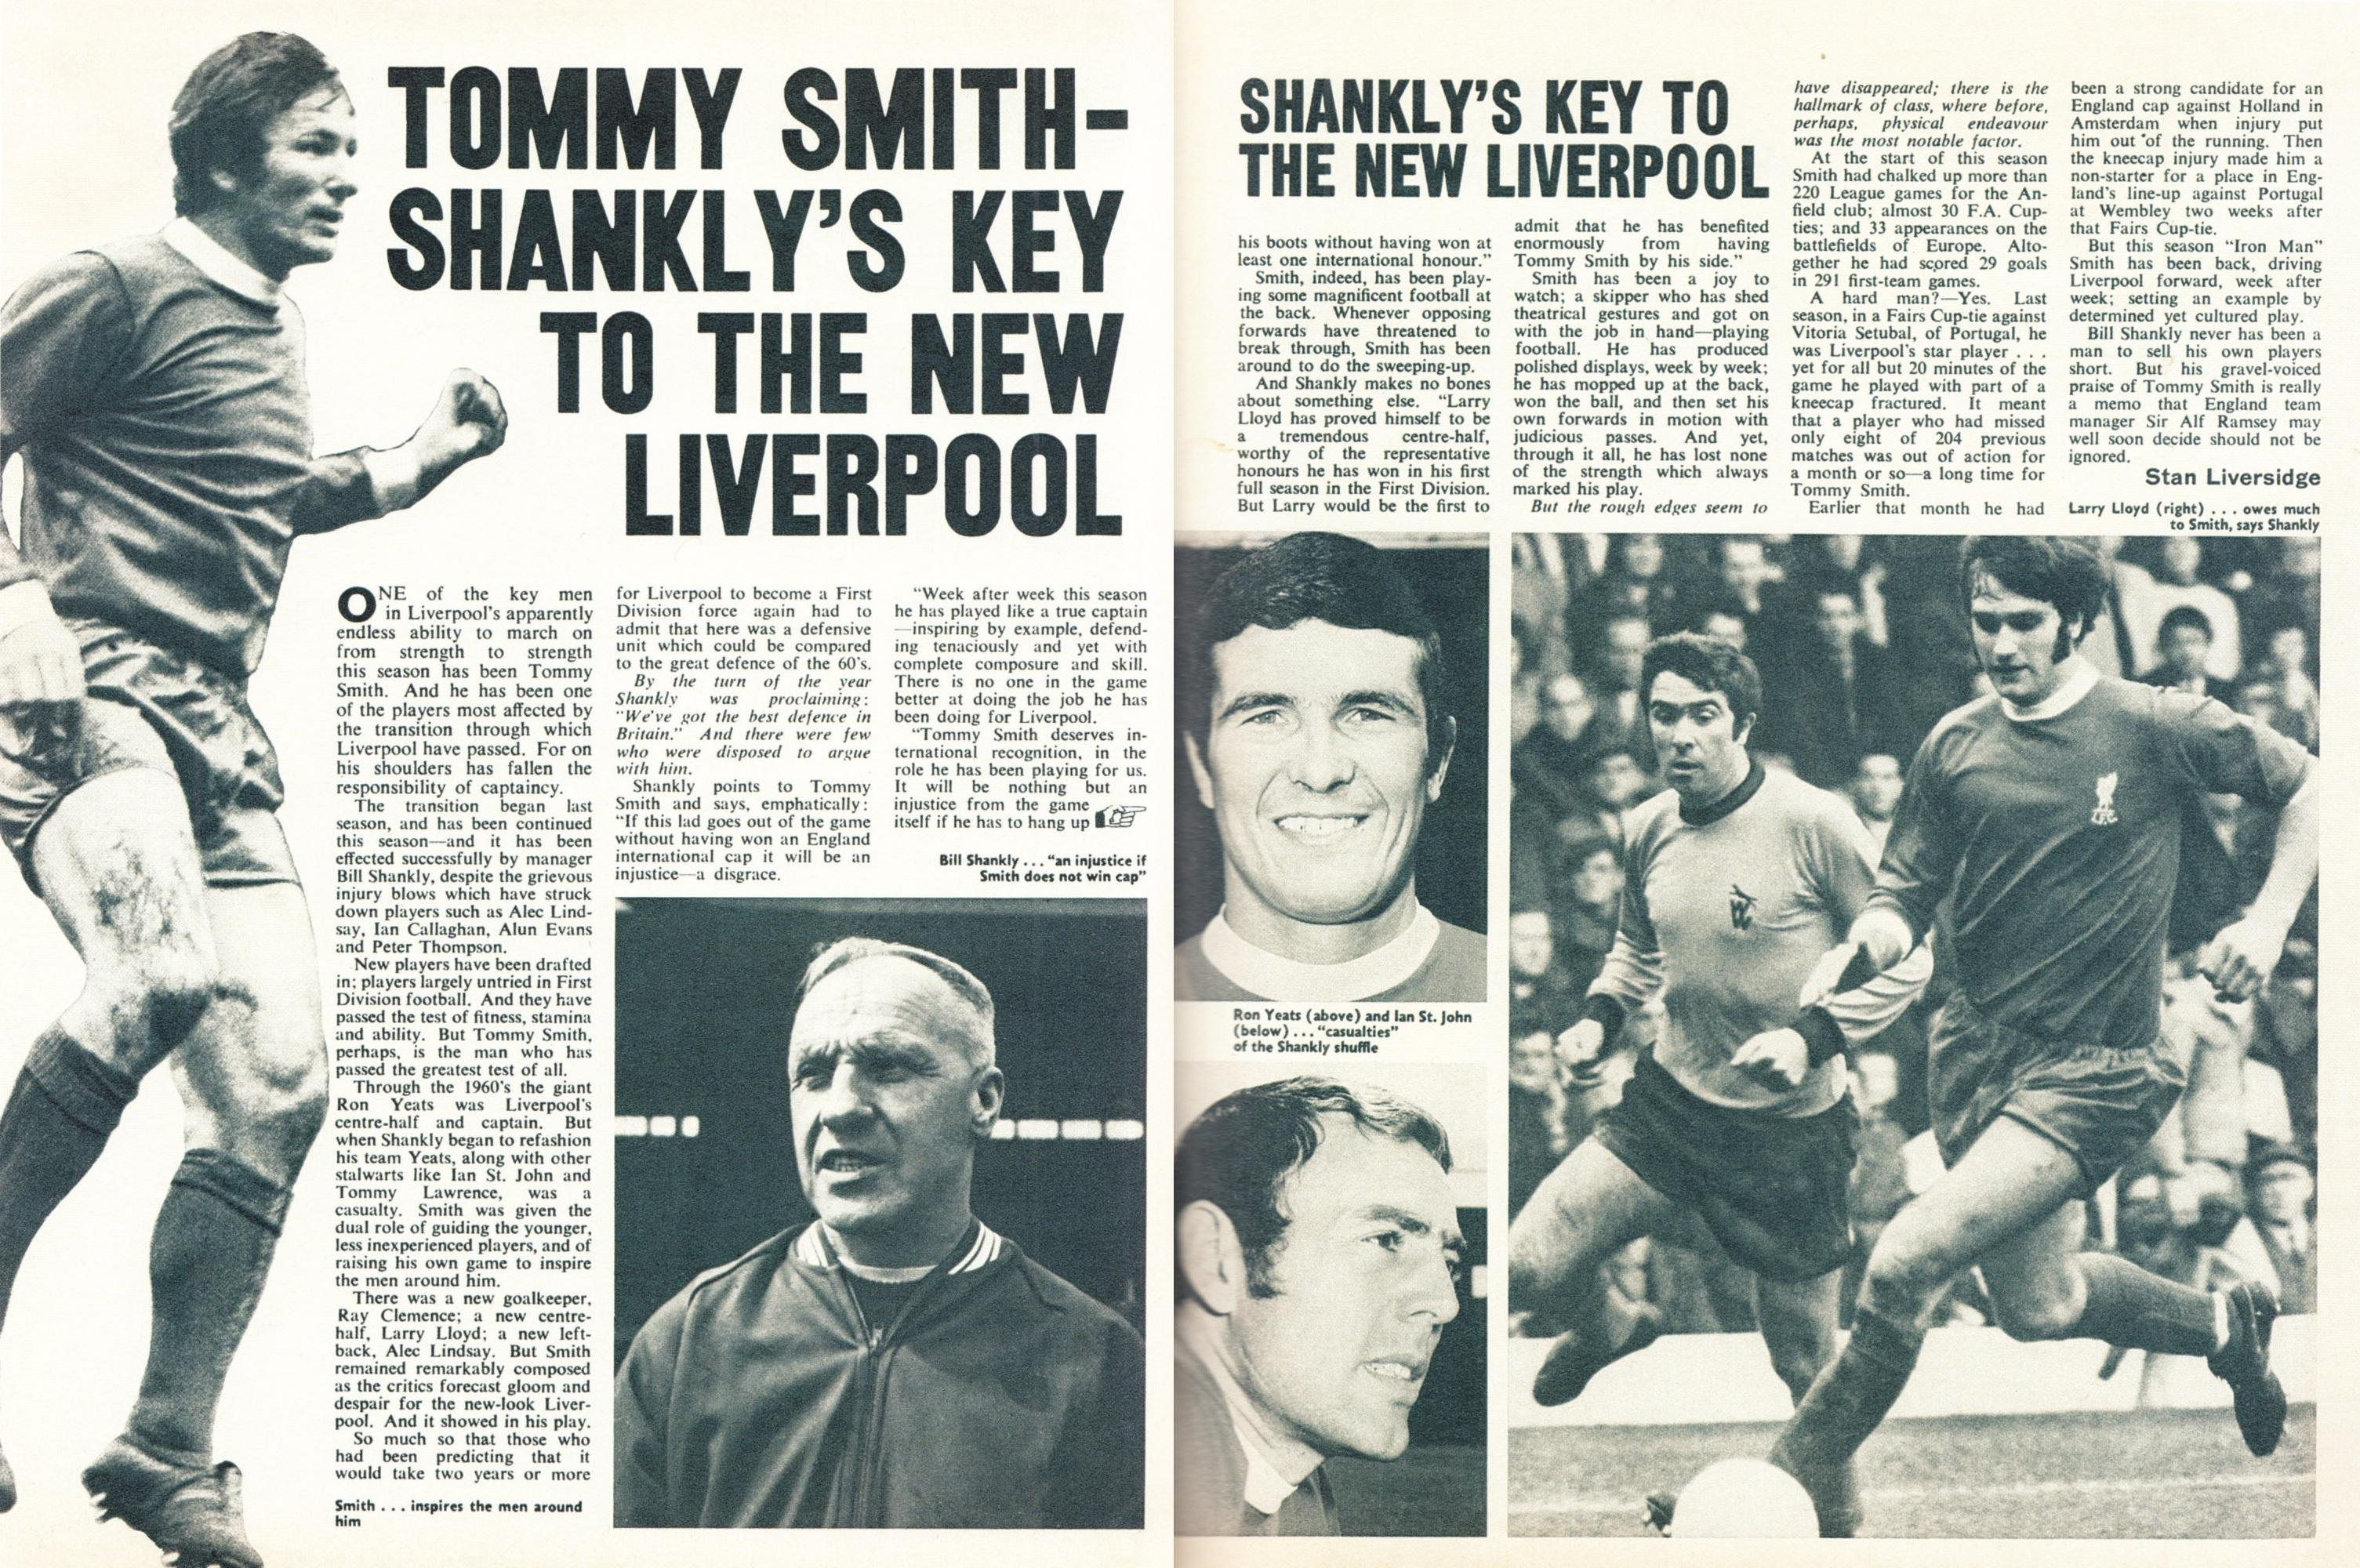 Key to Shankly's new Liverpool - Football Monthly March 1971